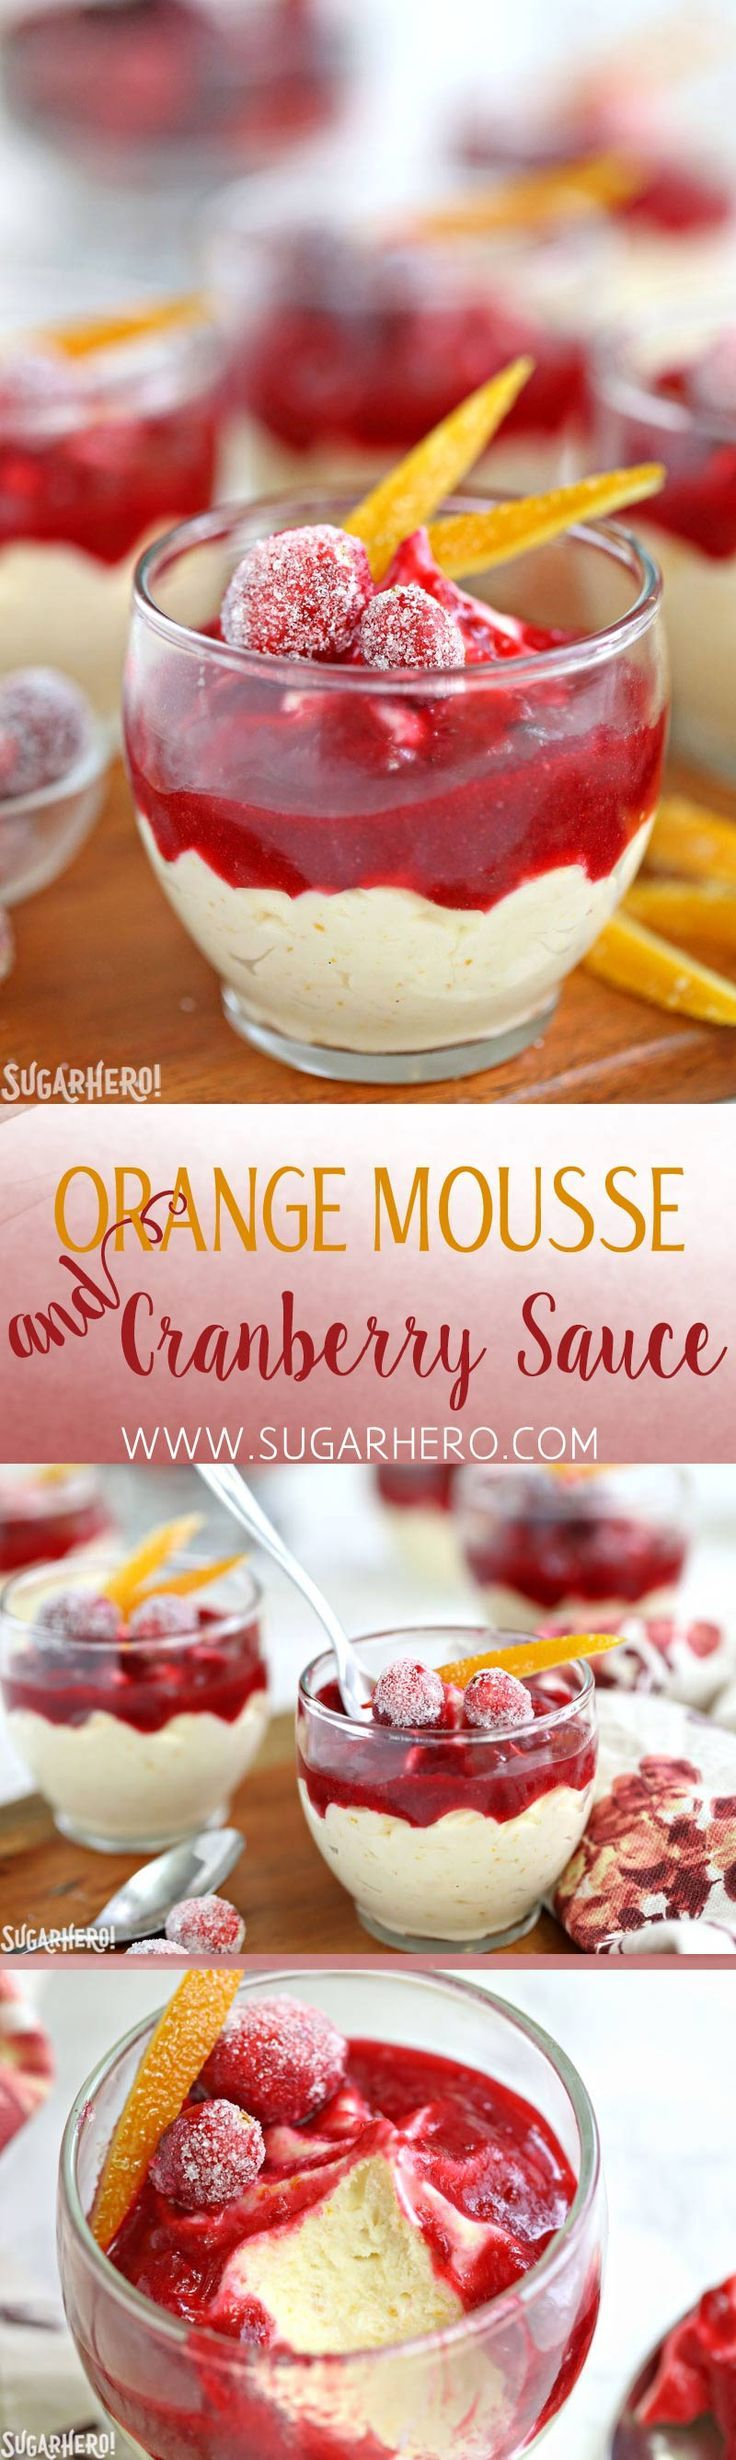 Orange Mousse with Cranberry Sauce - a light white chocolate/orange mousse, topped with sweet-tart cranberry sauce! | From SugarHero.com